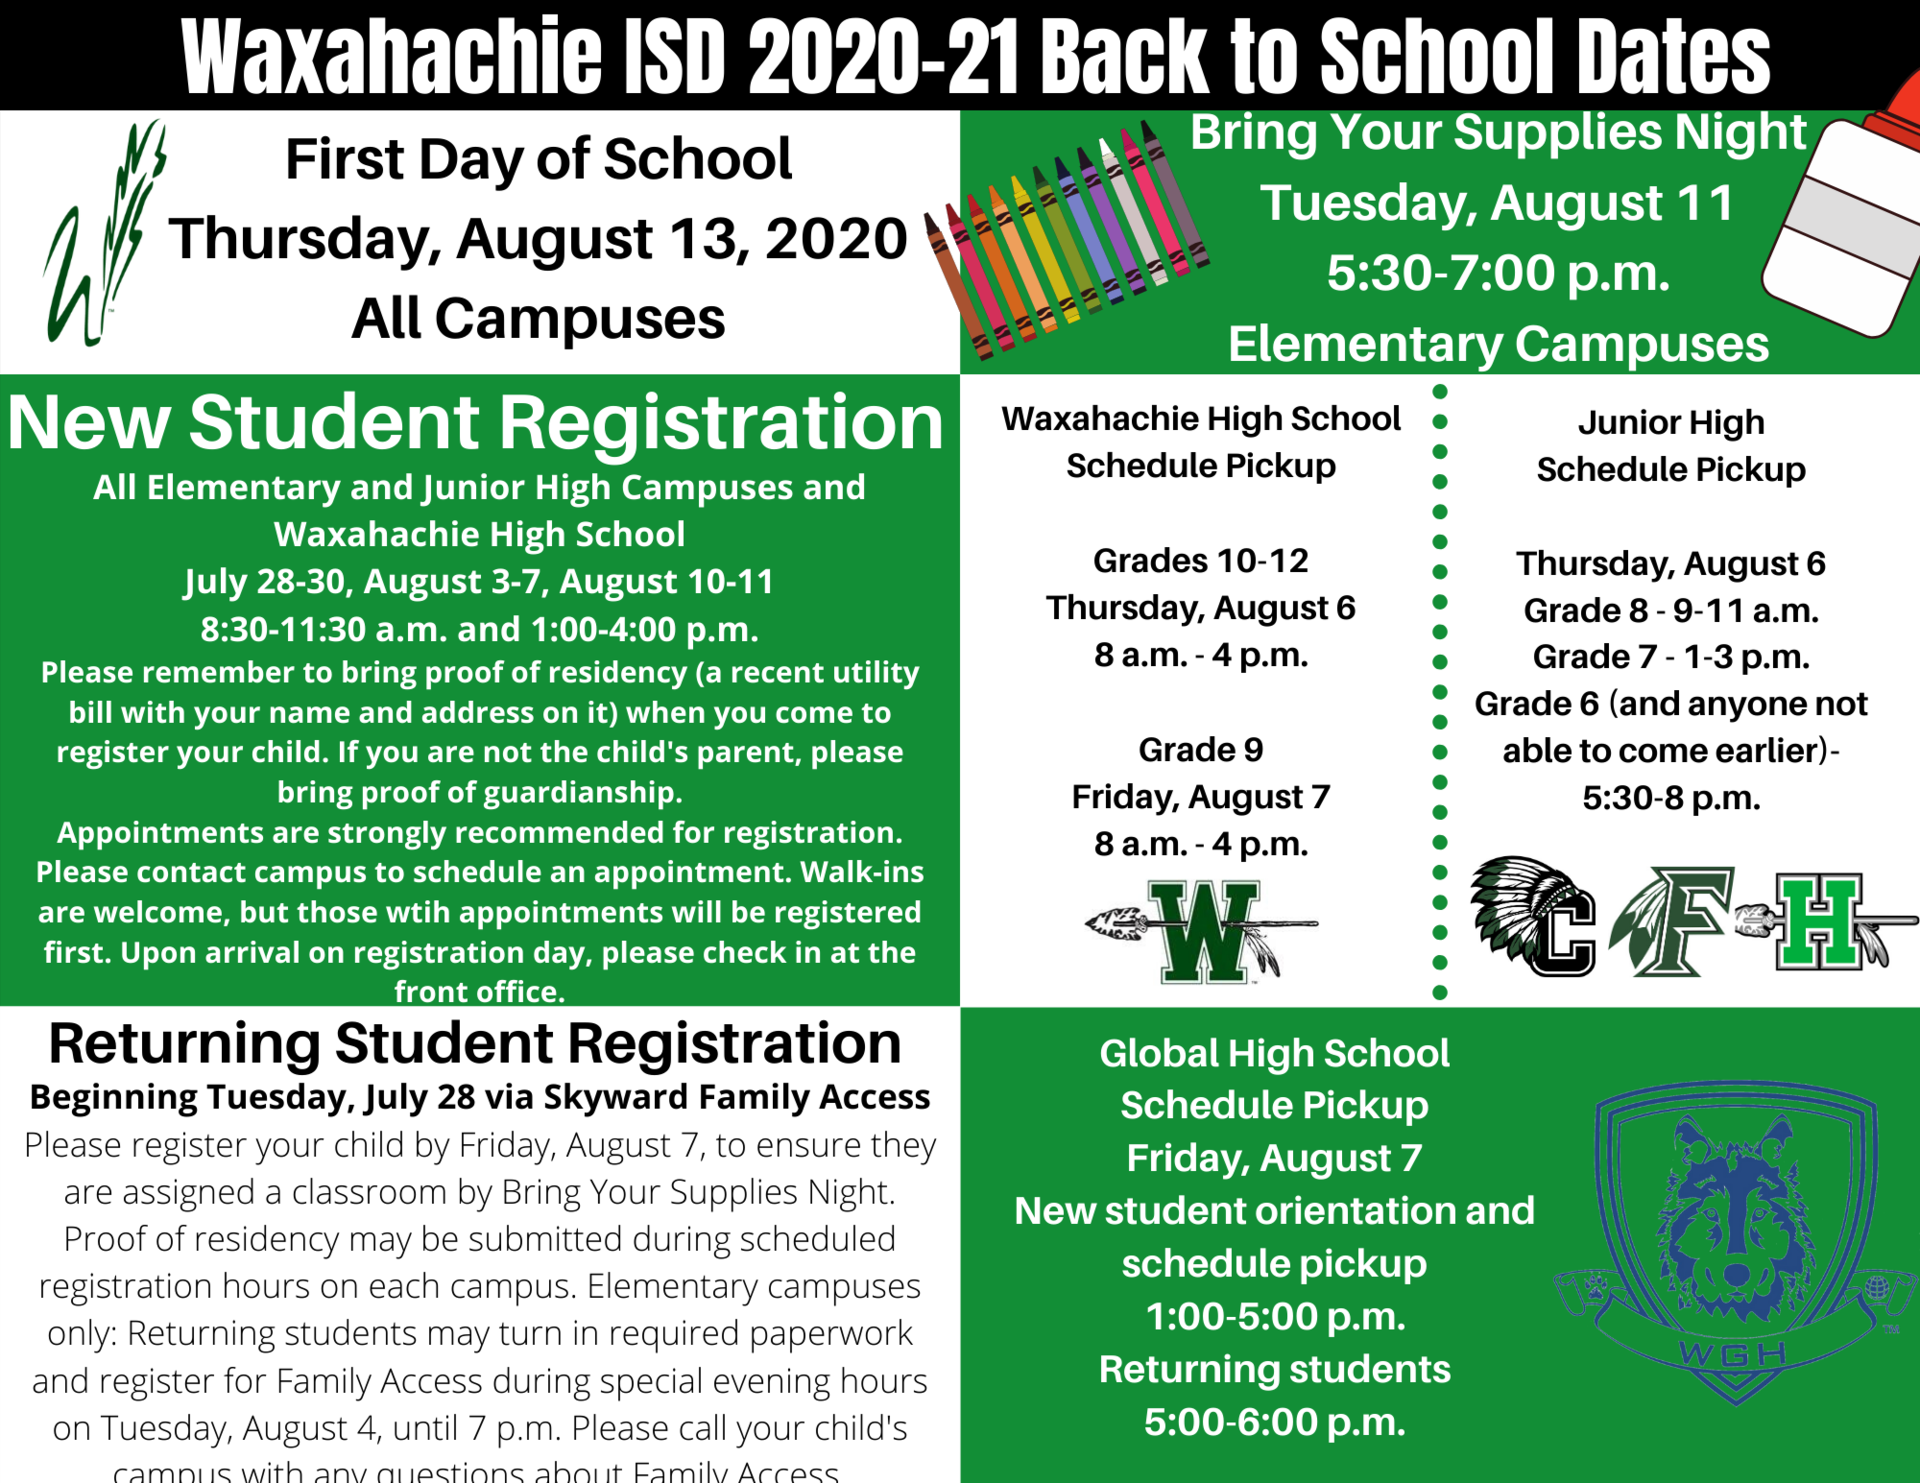 graphic with back to school info